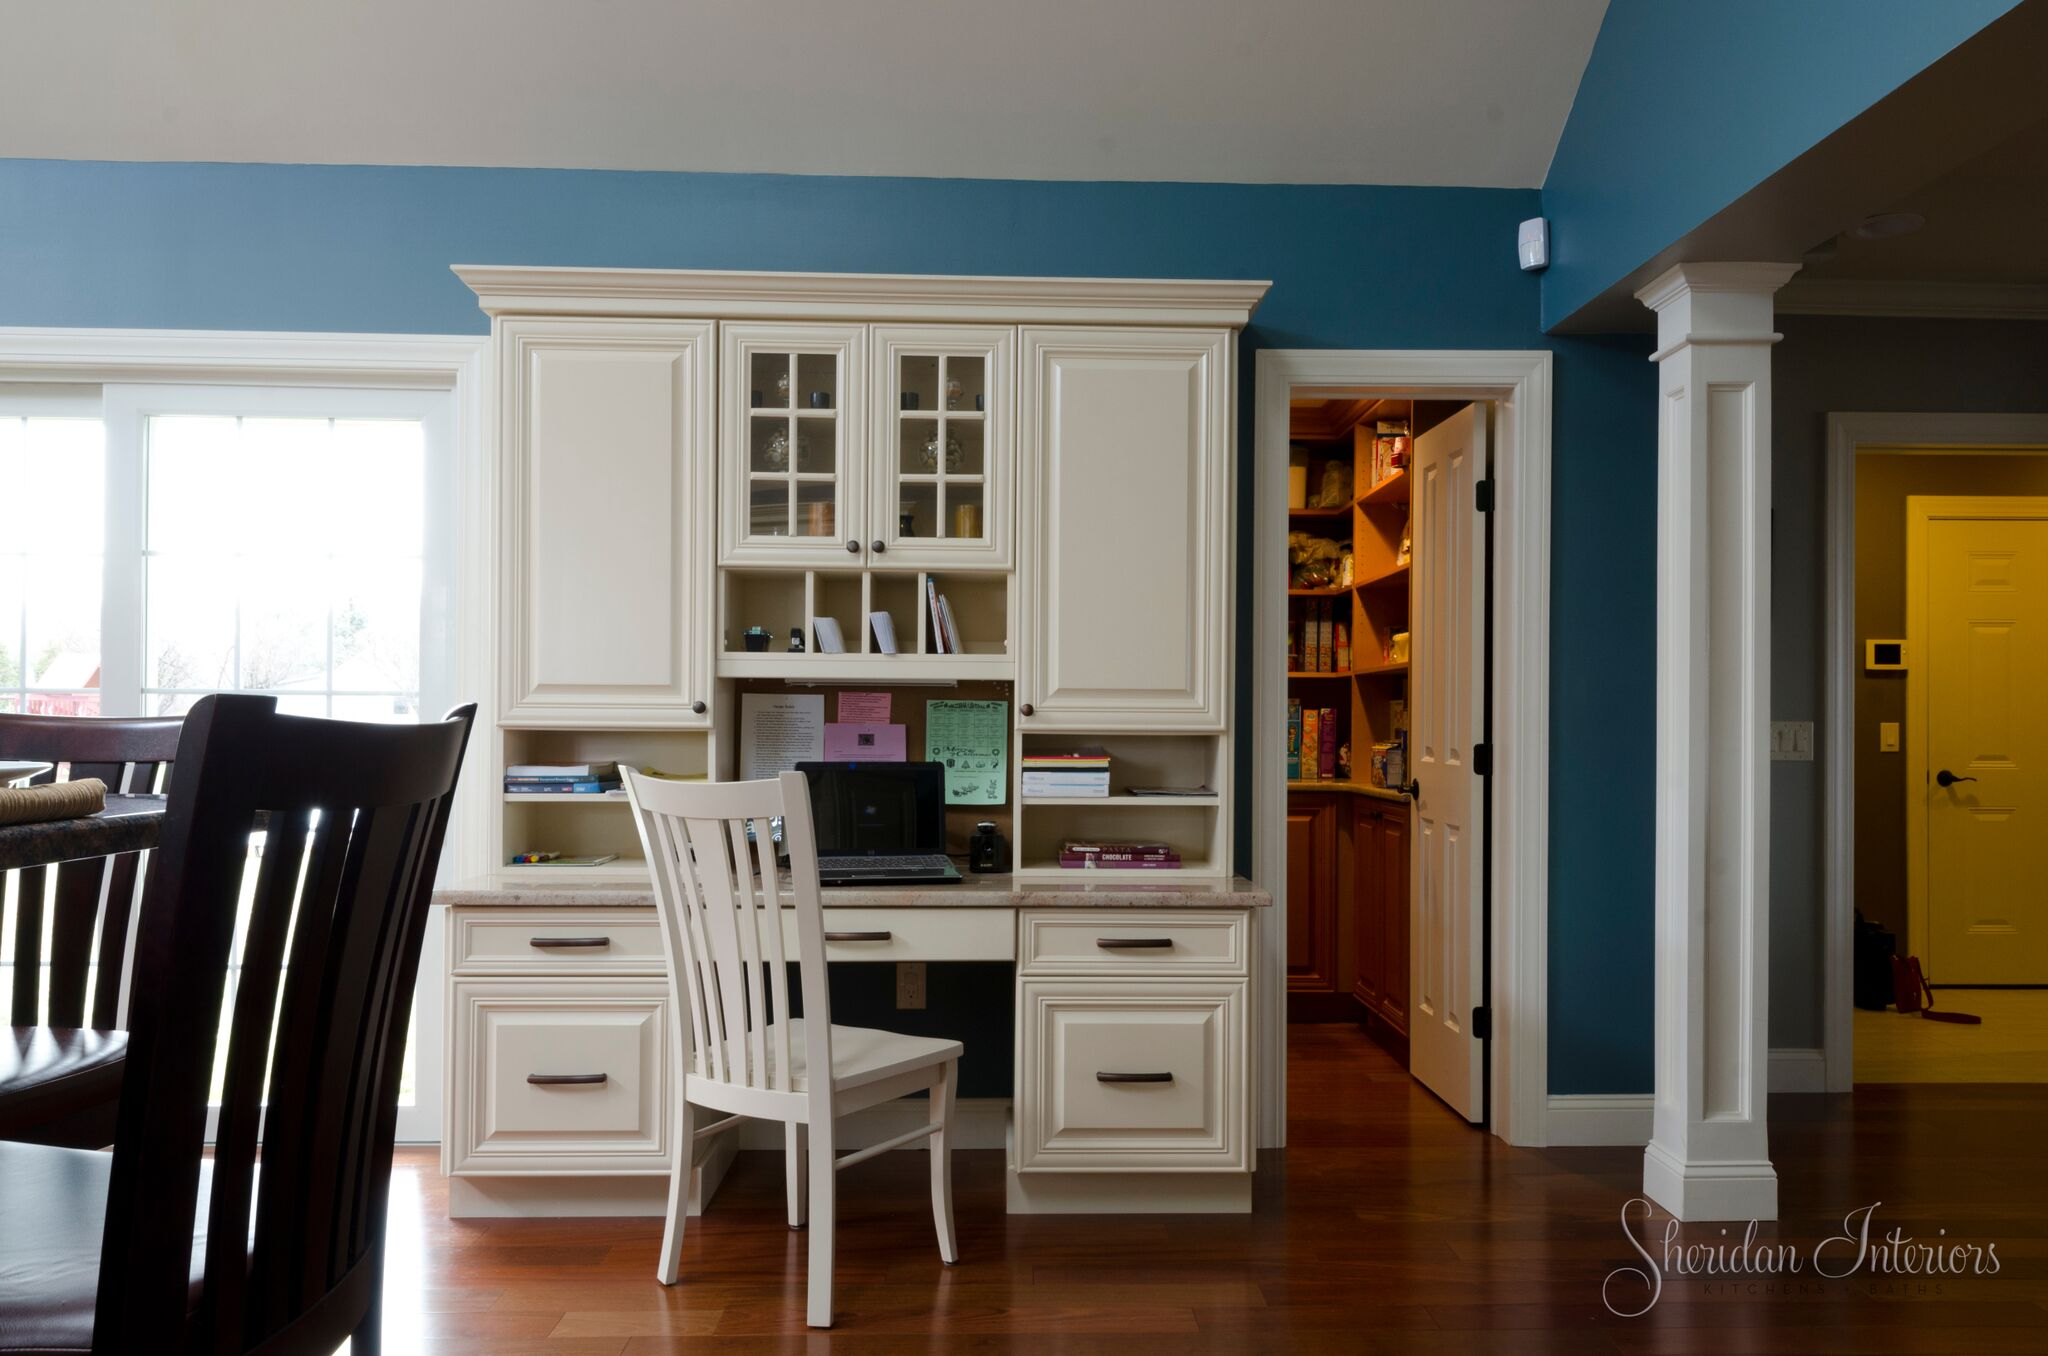 desk area in kitchen, traditional kitchen with desk, wood floors in kitchen, storage pantry traditional kitchen, Traditional Kitchen with Desk Area - Sheridan Interiors, sheridan interiors kitchens and baths, kitchen designer cornwall, kitchen designer ottawa